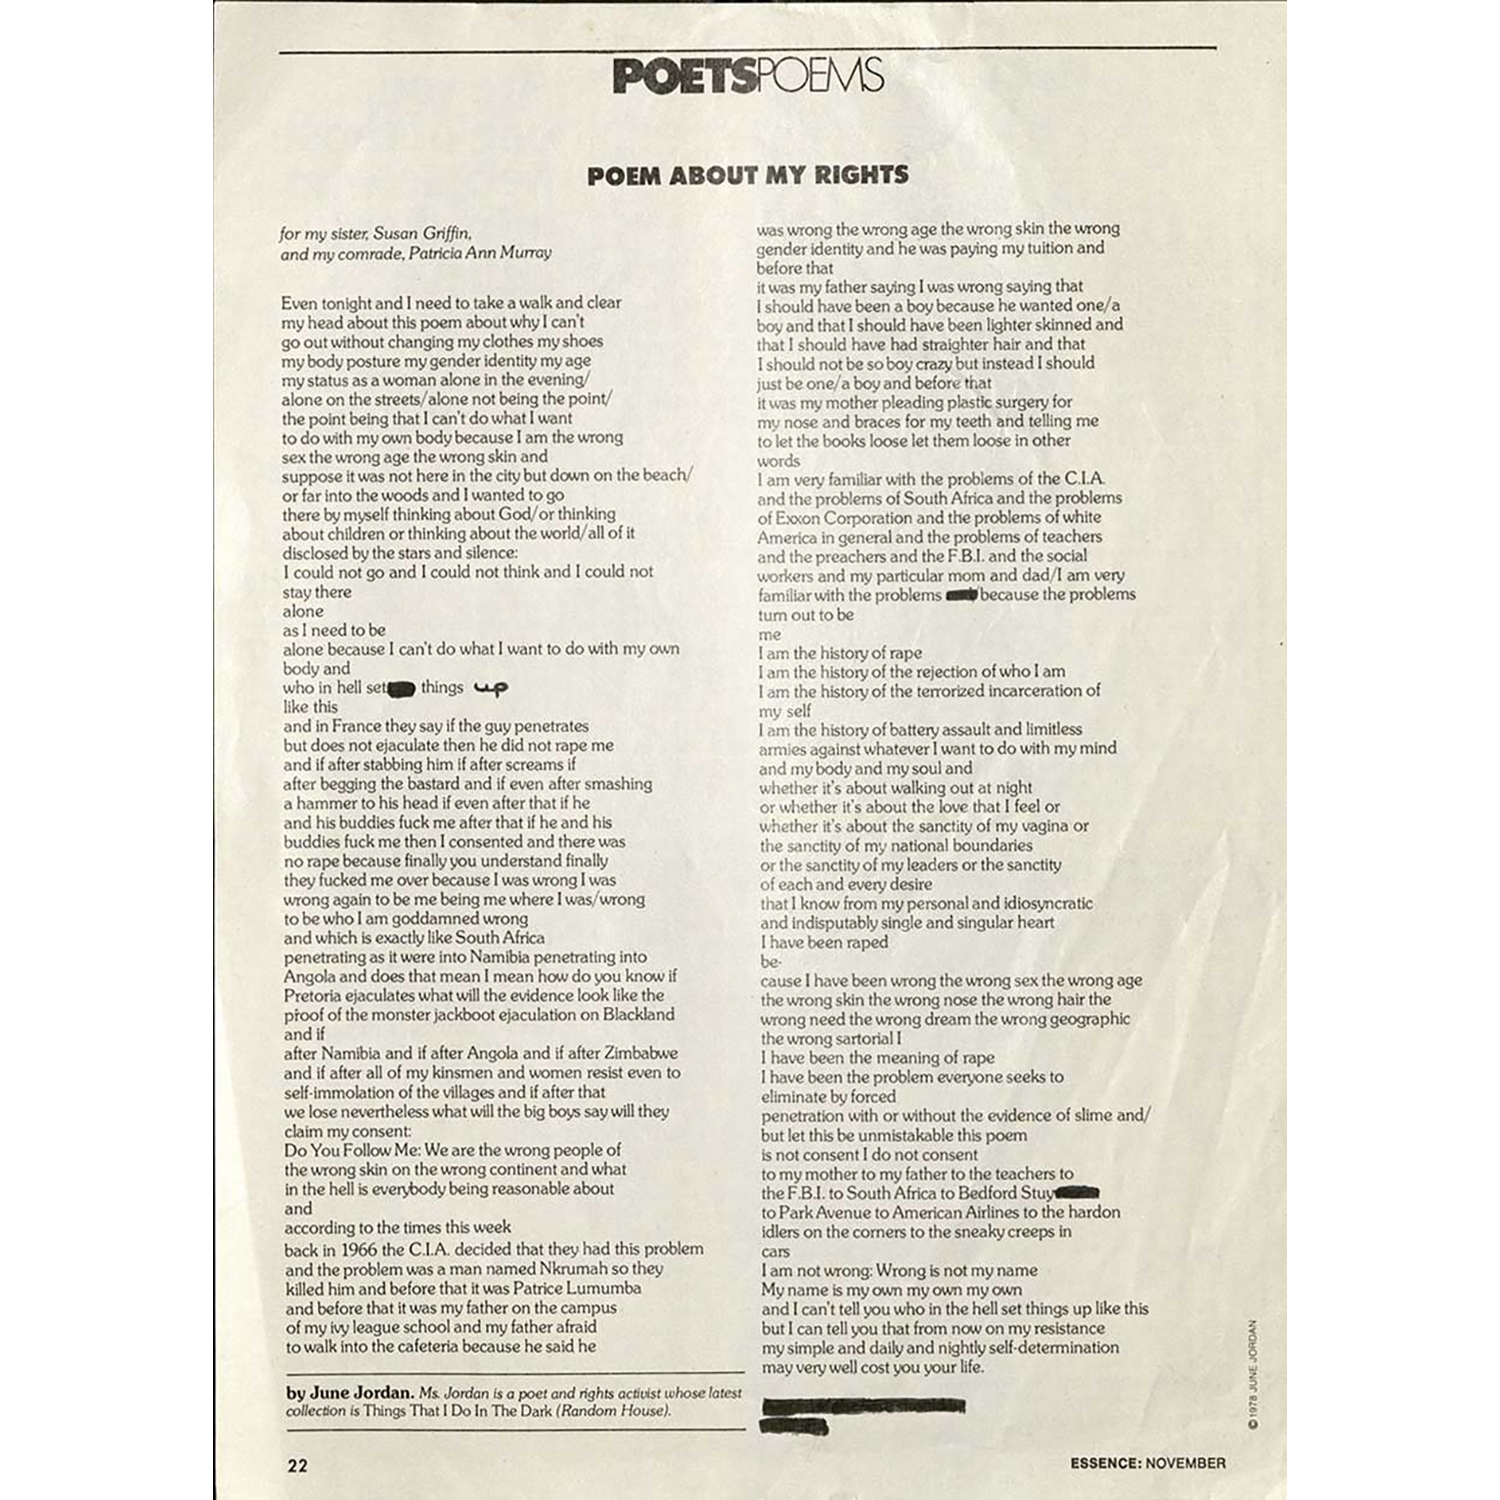 poem-about-my-rights-in-essence-magazine_november-1978_courtesy-of-schlesinger-library_900px.jpg